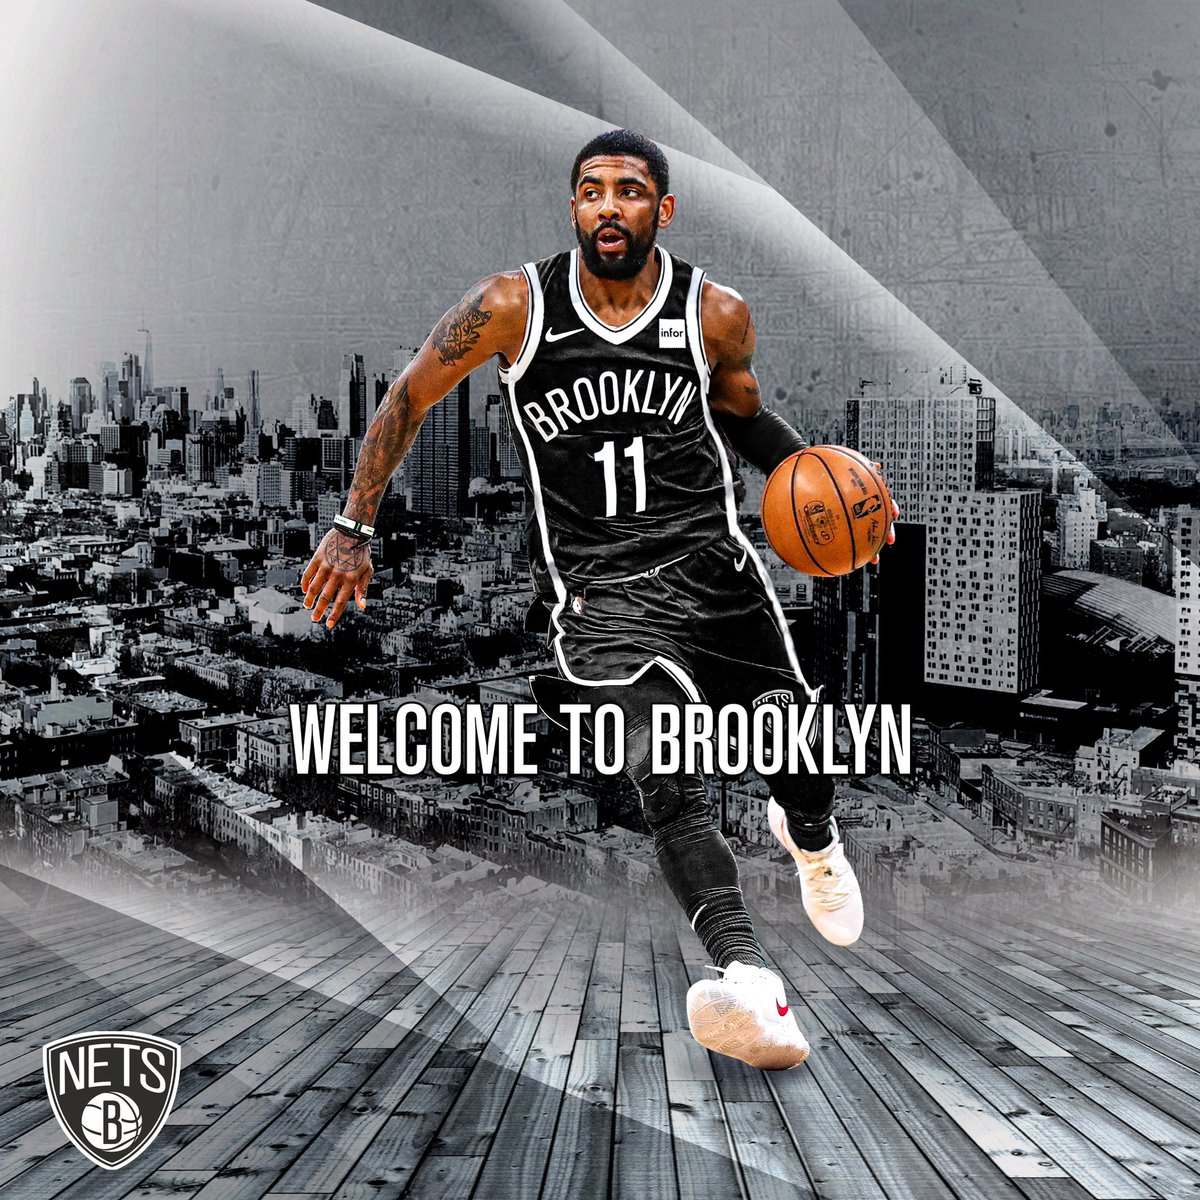 Kyrie Irving Brooklyn Nets Wallpapers   Kyrie Irving Brooklyn Nets 1200x1200